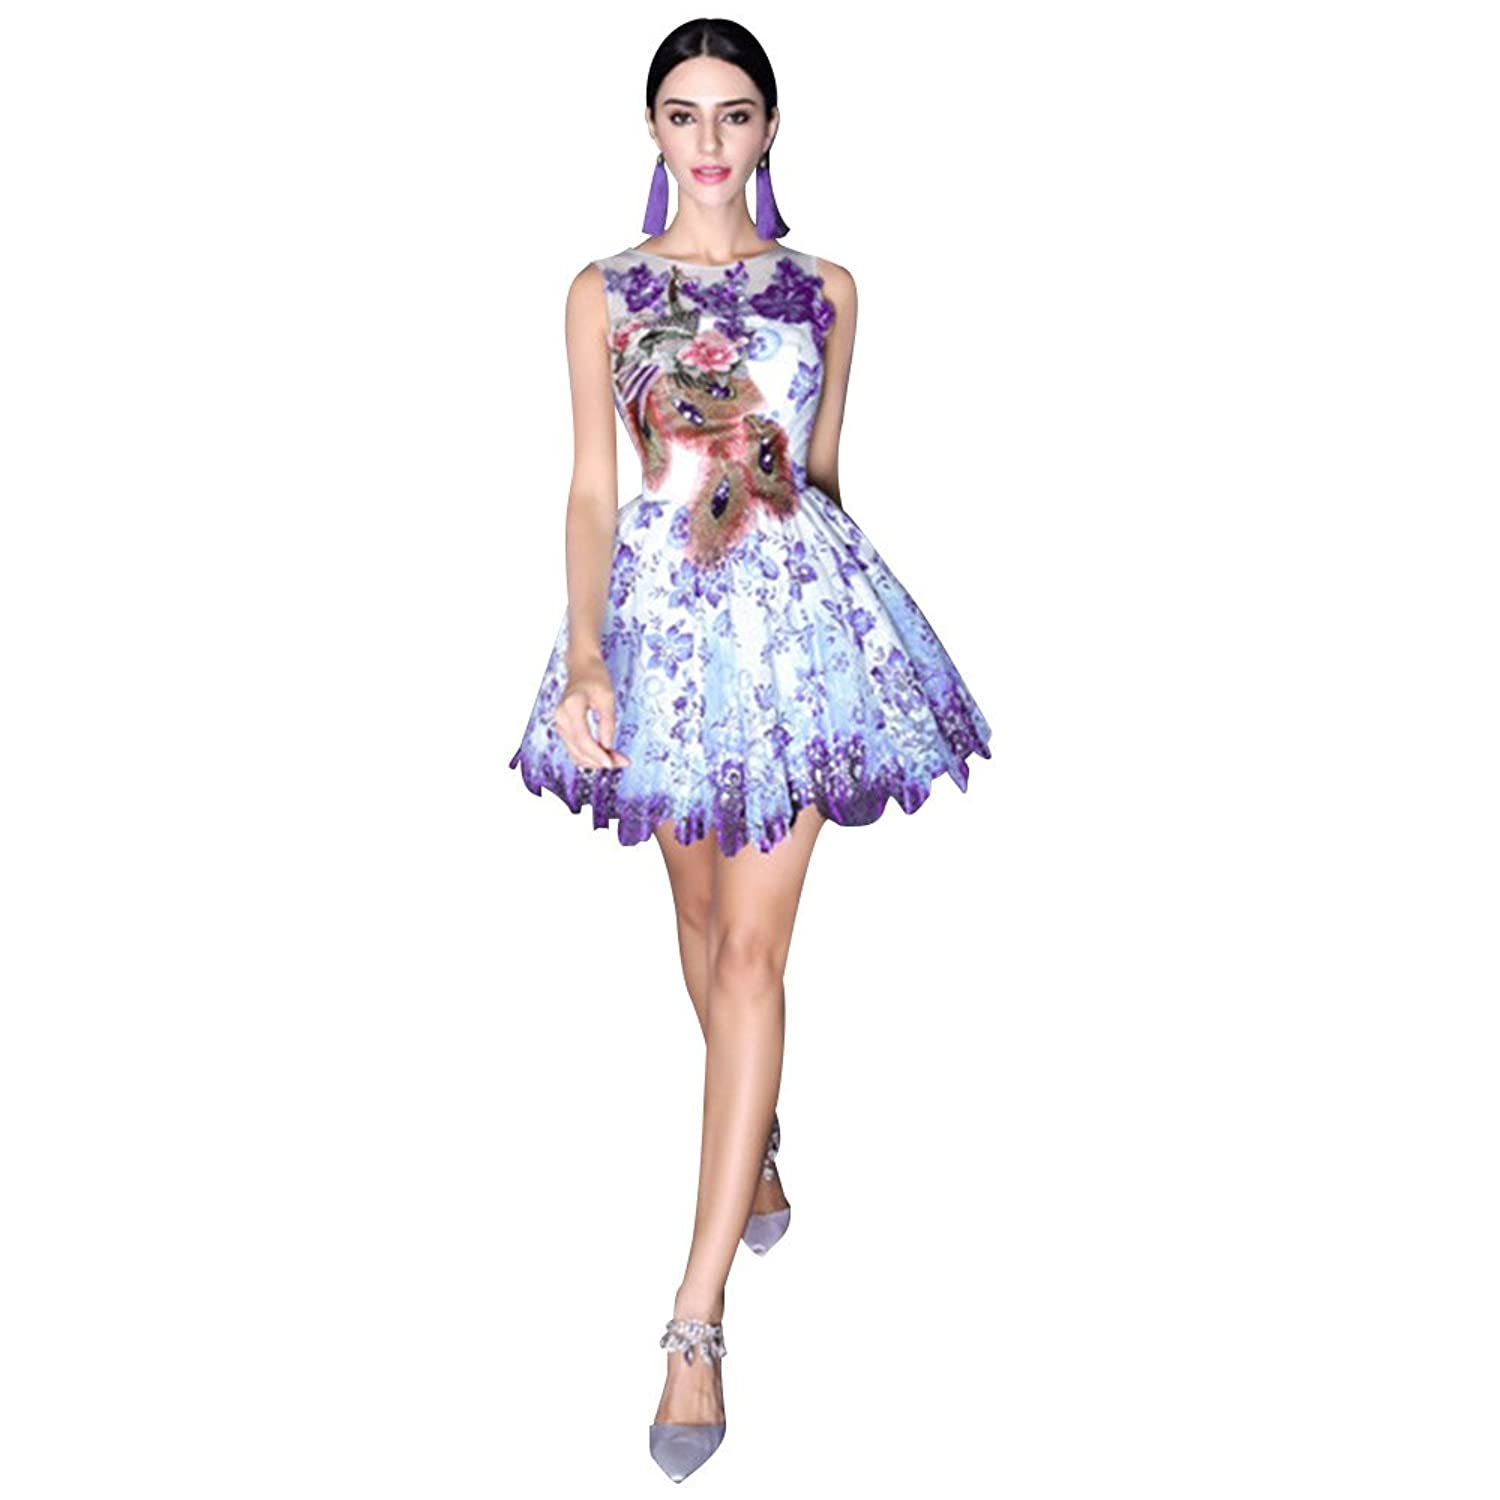 Eastlion Peacock Embroidery Women Dress Chinese Blue and White Porcelain Style Dresses Banquet Women Evening Gown Dress